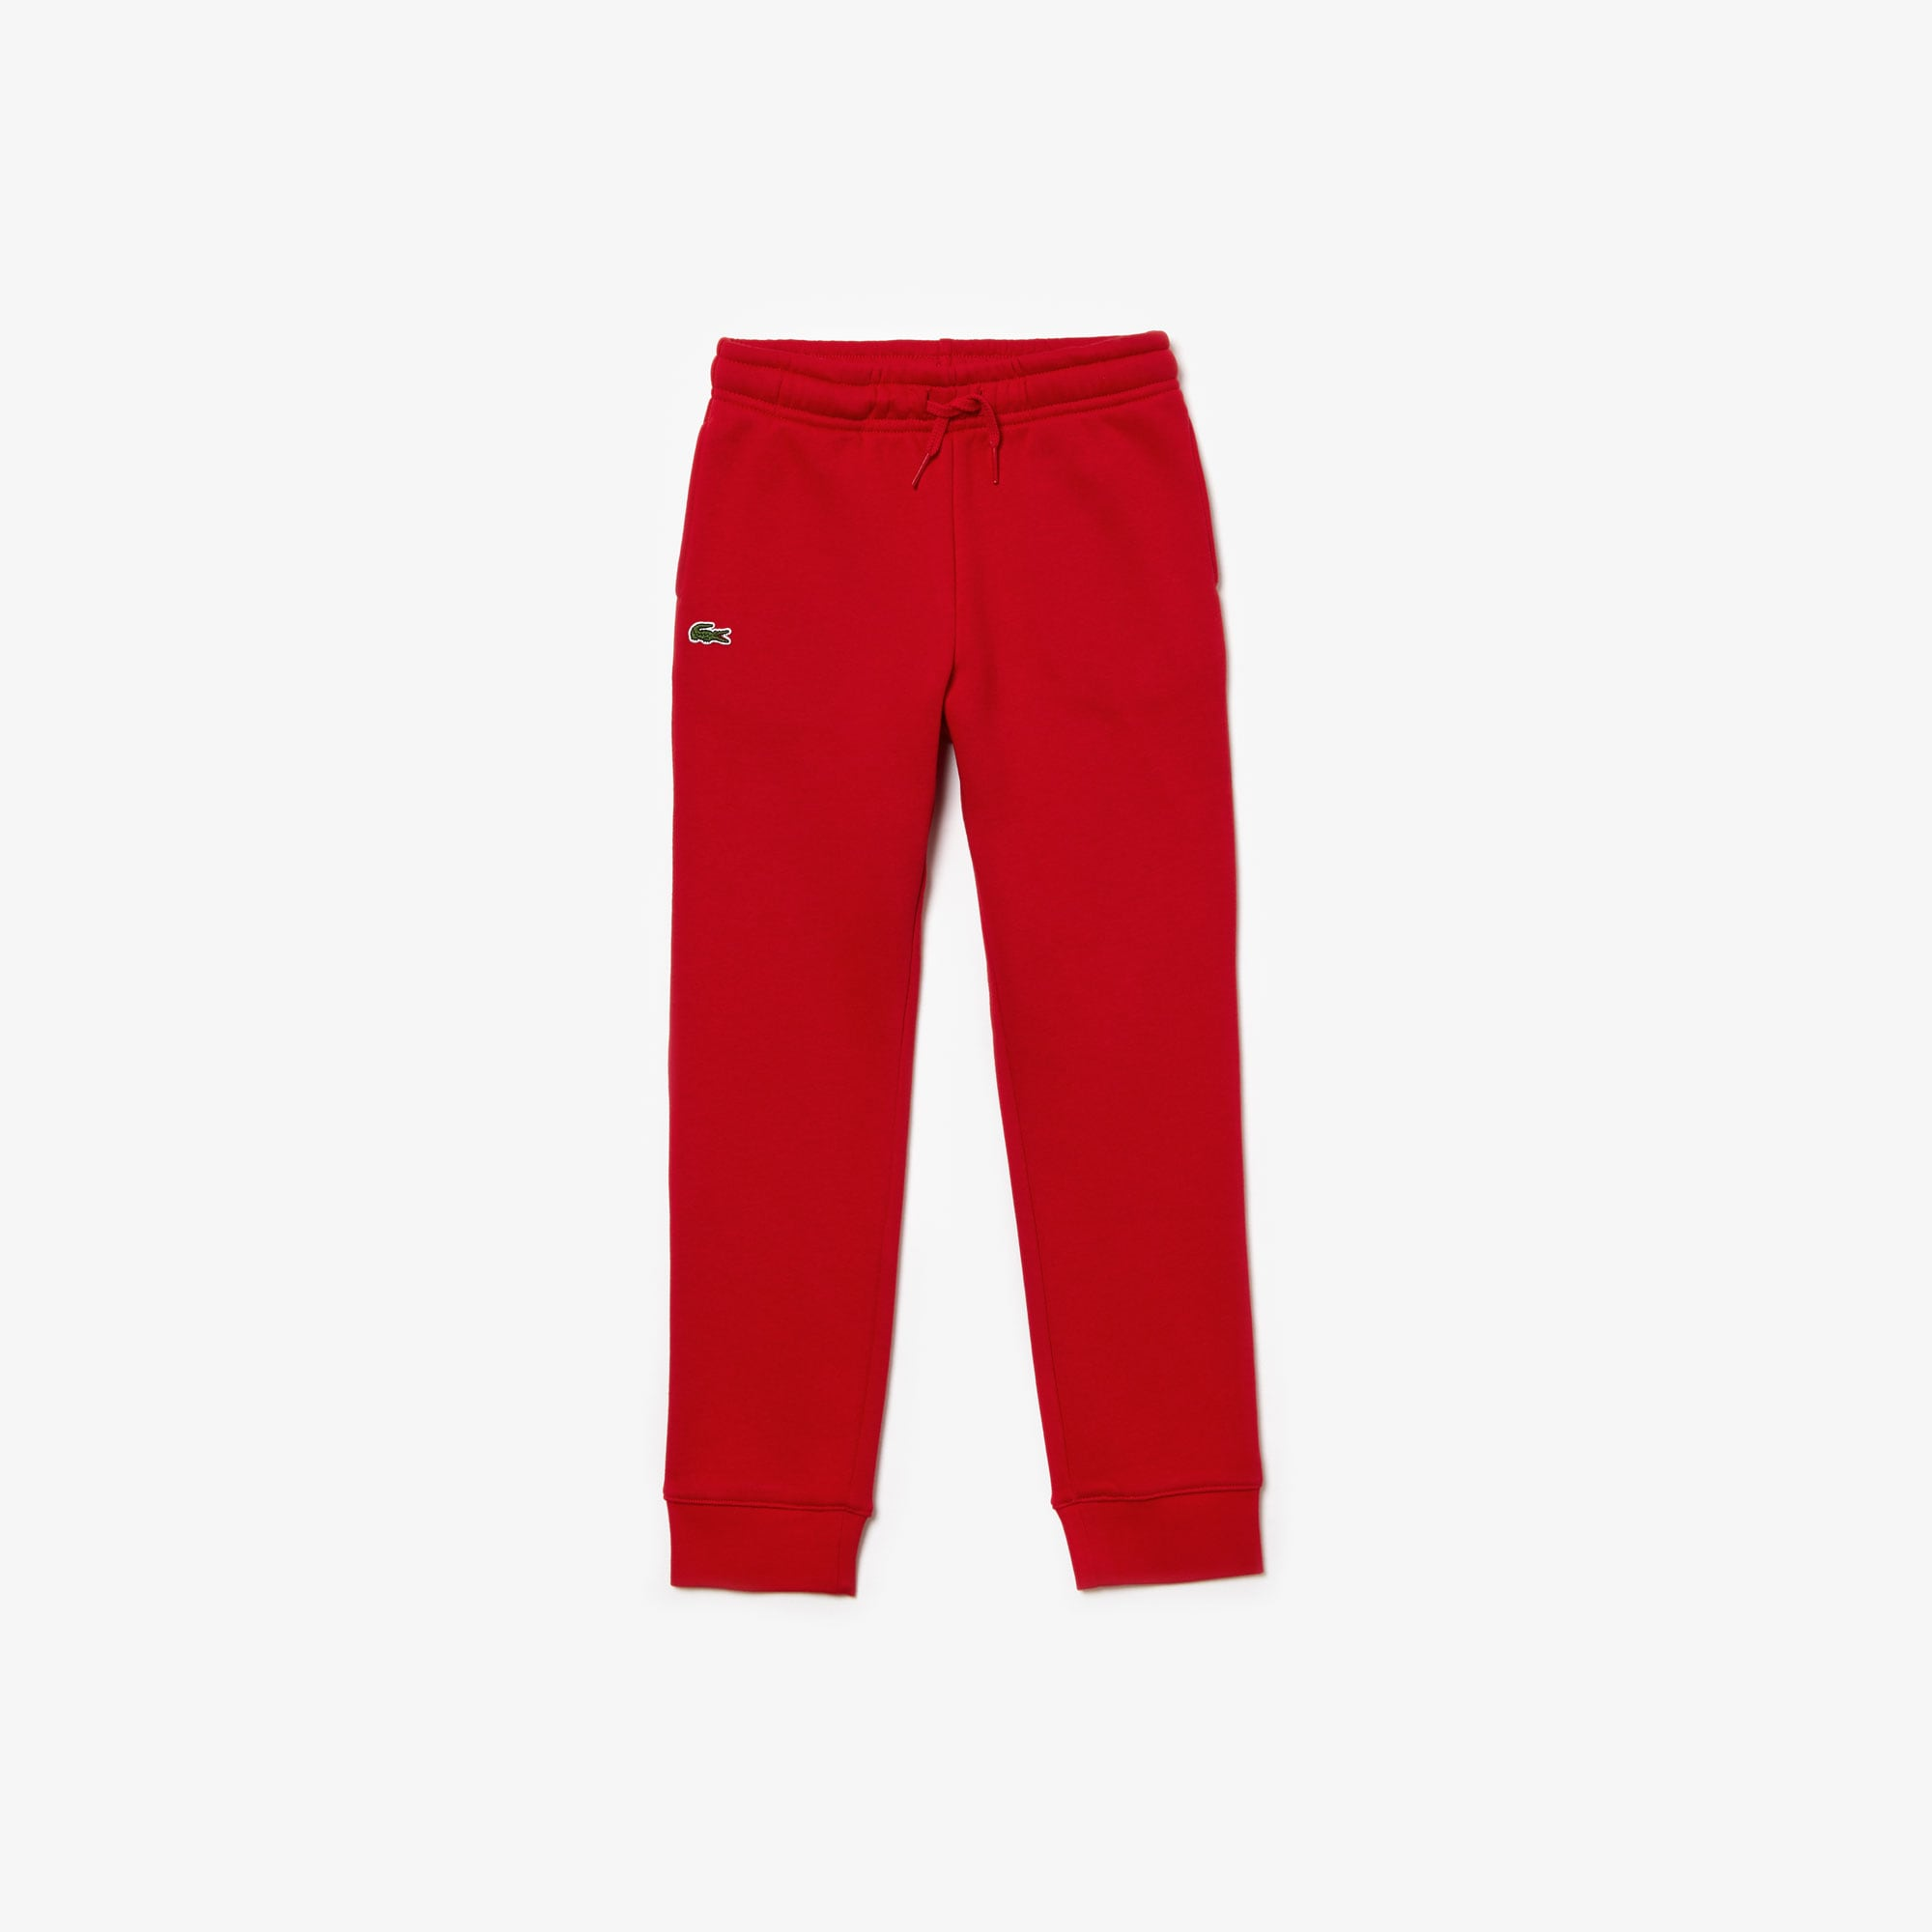 Boys' SPORT Fleece Sweatpants